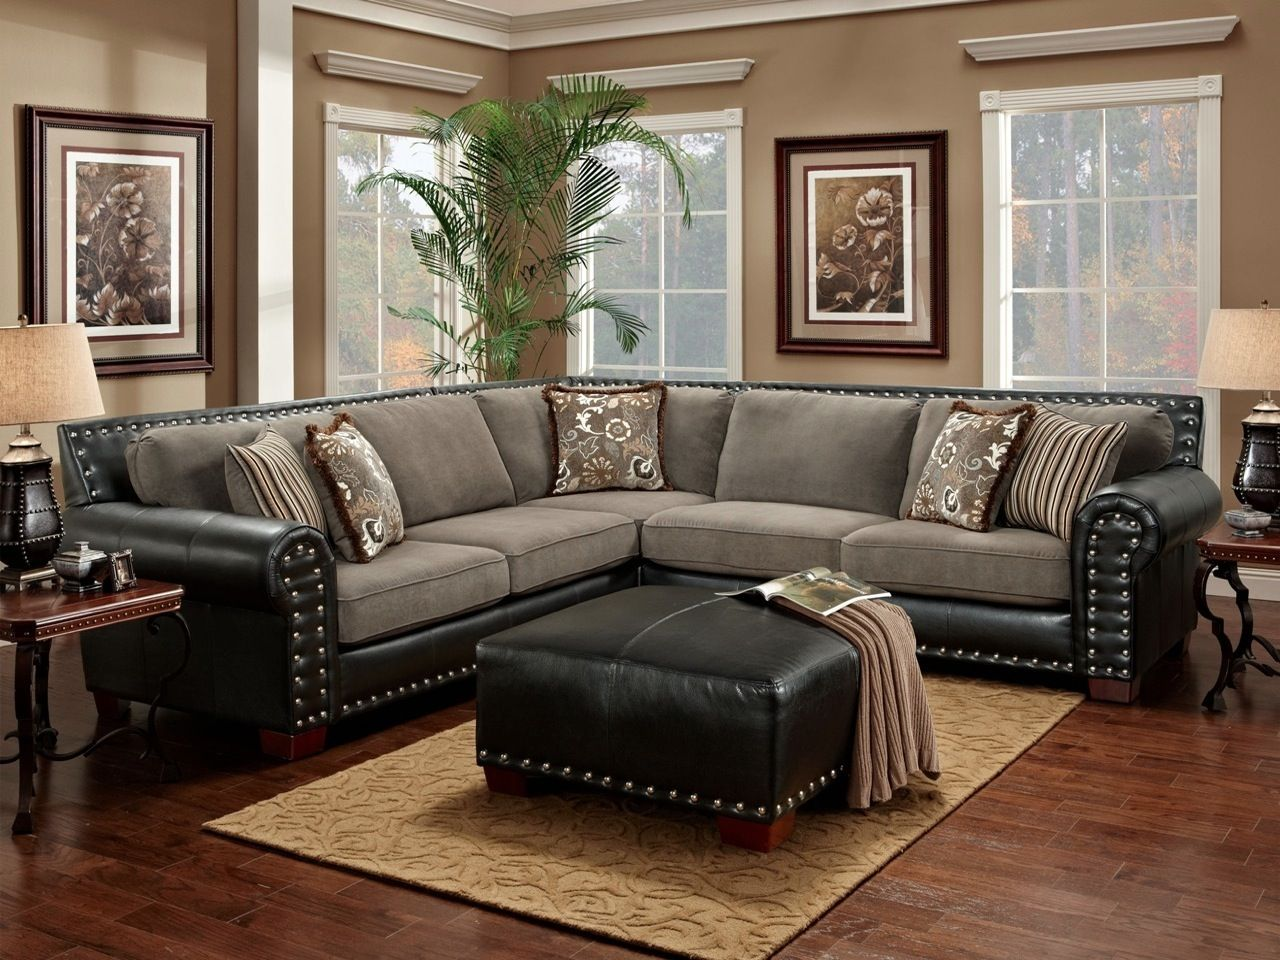 Sectional | Black leather couch, Contemporary living room ...